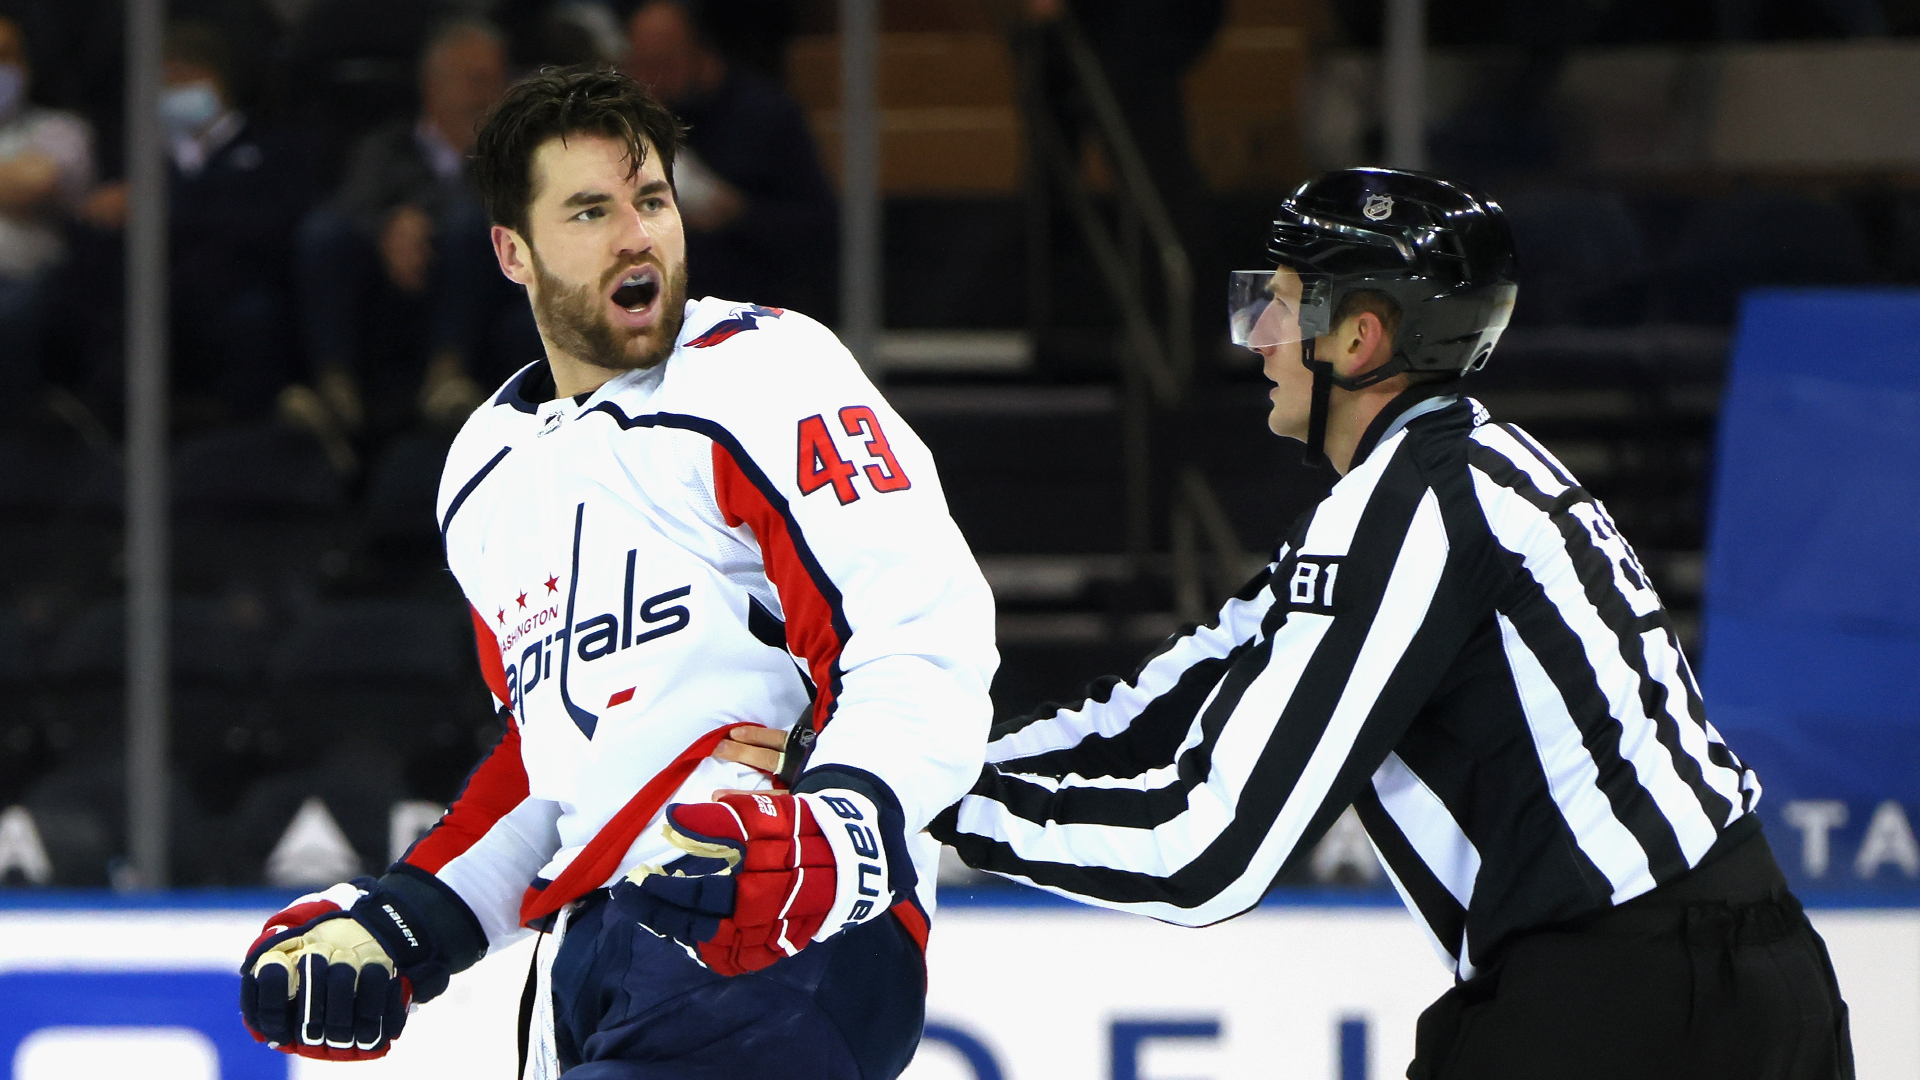 Capitals' Tom Wilson punches Pavel Buchnevich in head, slams Artemi Panarin to ice